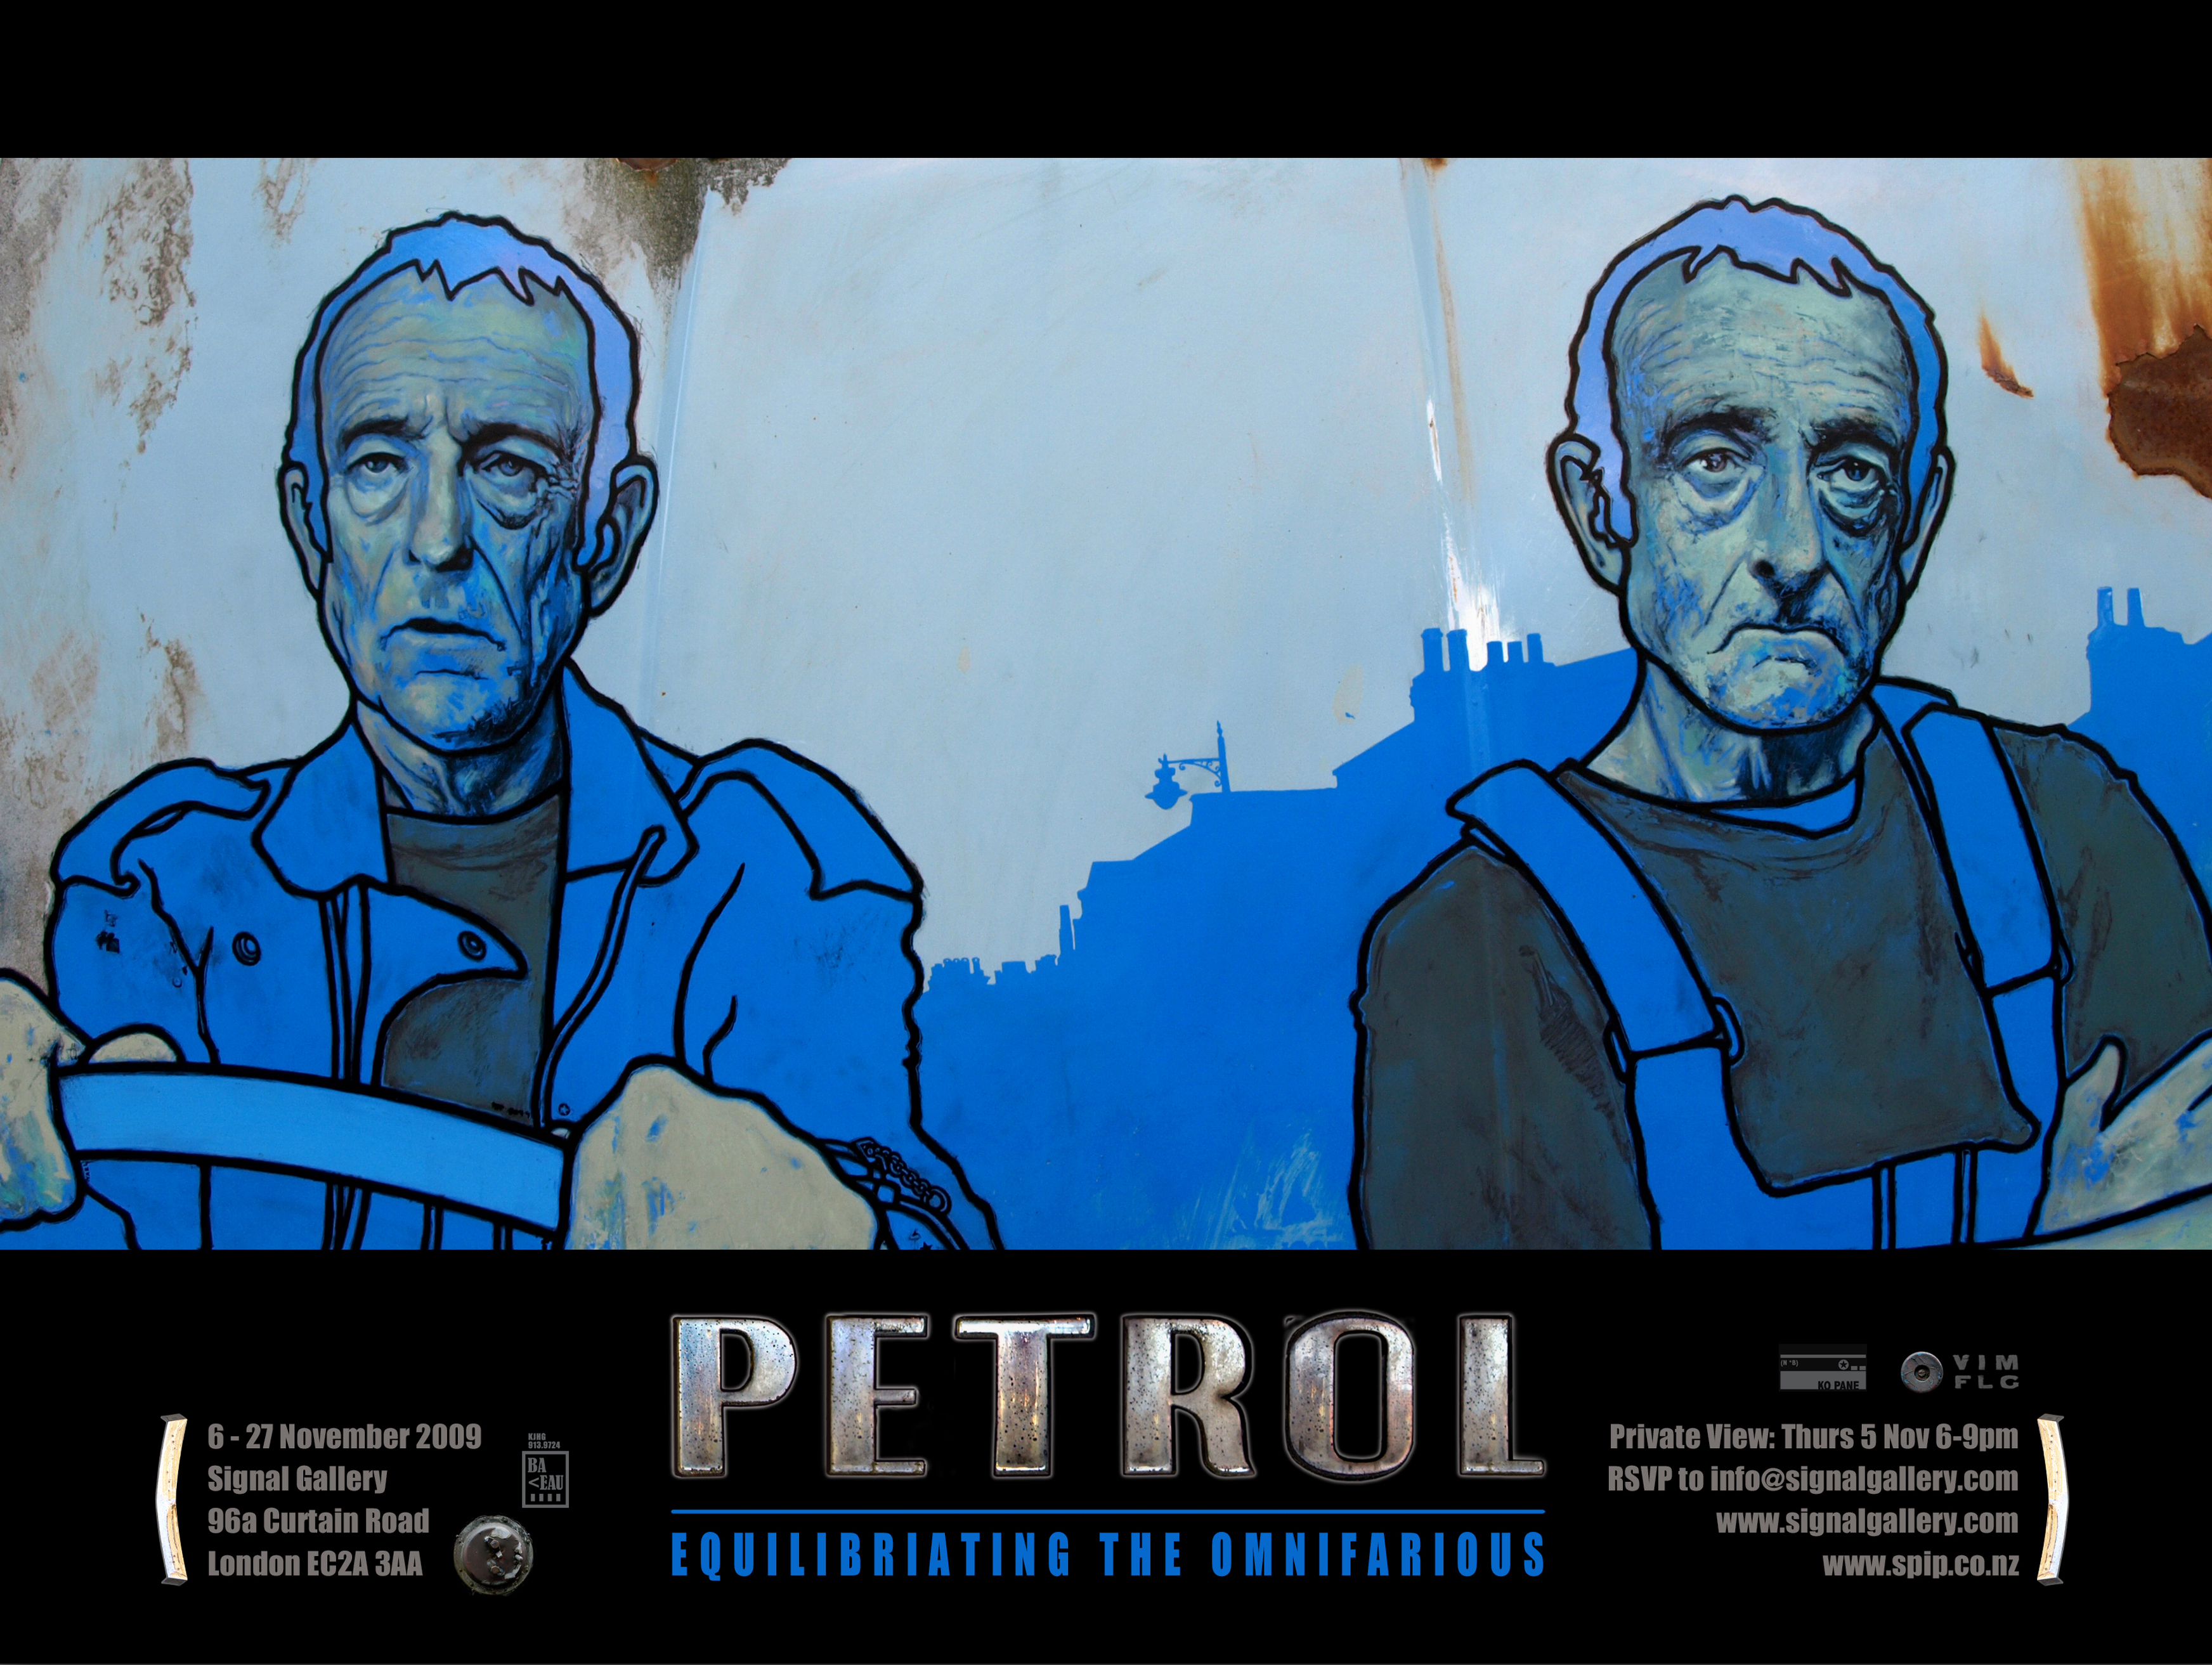 PETROL - EQUILIBRIATING THE OMNIFARIOUS - solo exhibition by David Le Fleming 2009